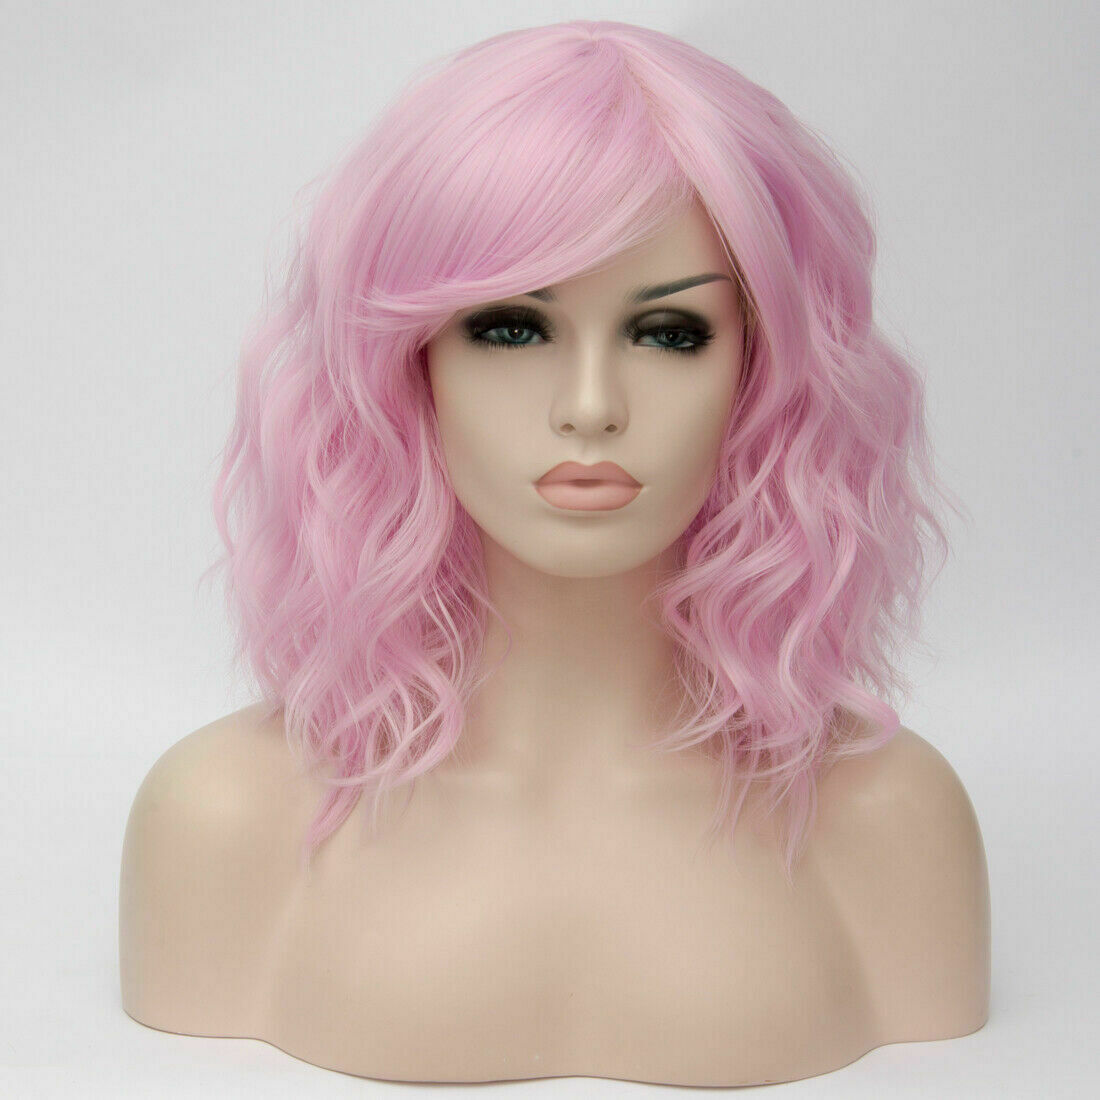 Lolita-Women-039-s-Short-Curly-Anime-Synthetic-Hair-Heat-Resistant-Cosplay-Party-Wig miniature 42